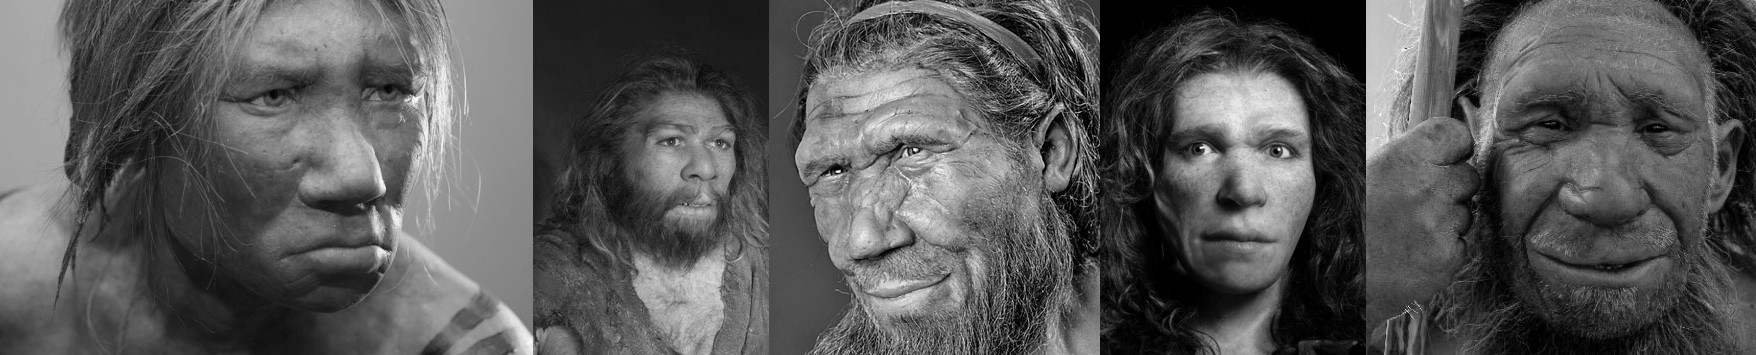 Forensic and artistic reconstructions of Homo Neanderthalensis. They seem like nice enough folks. What if they moved? Would we understand their facial expressions?